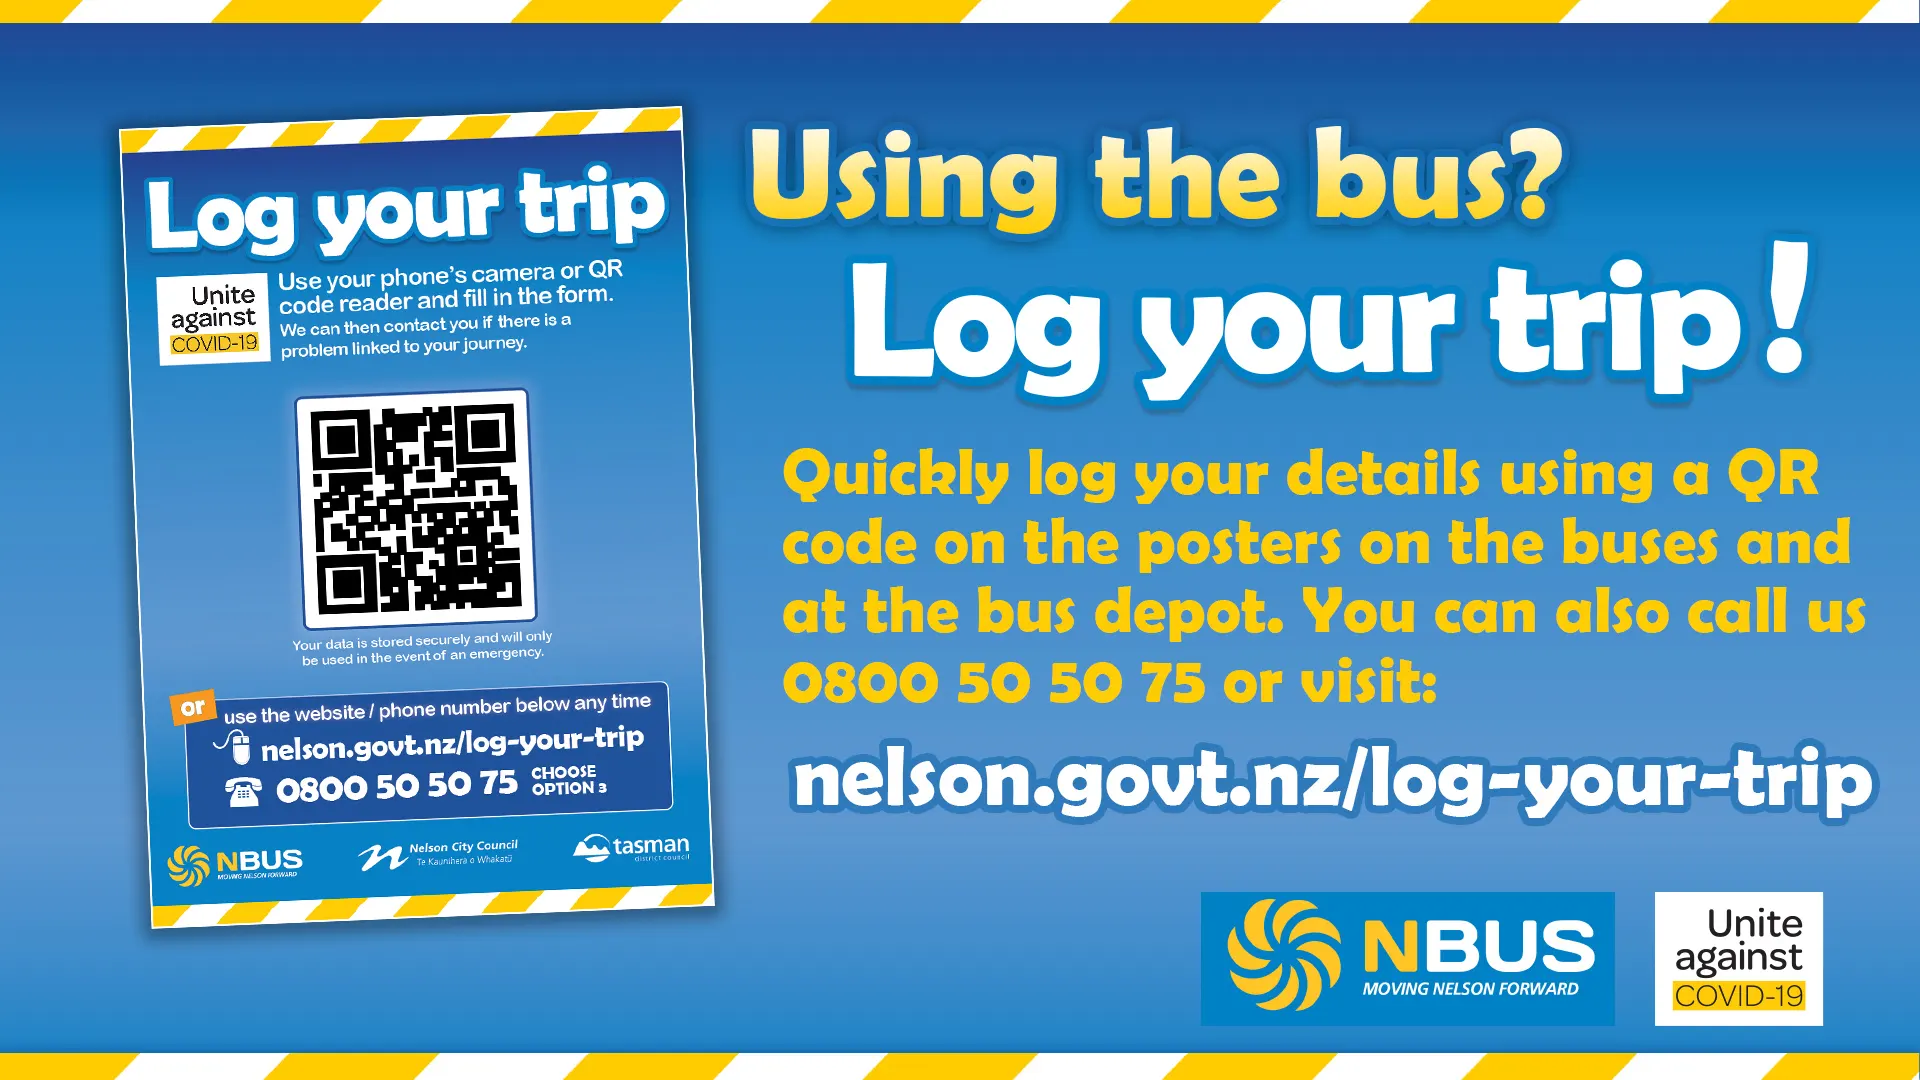 log you trip using qr codes on poster